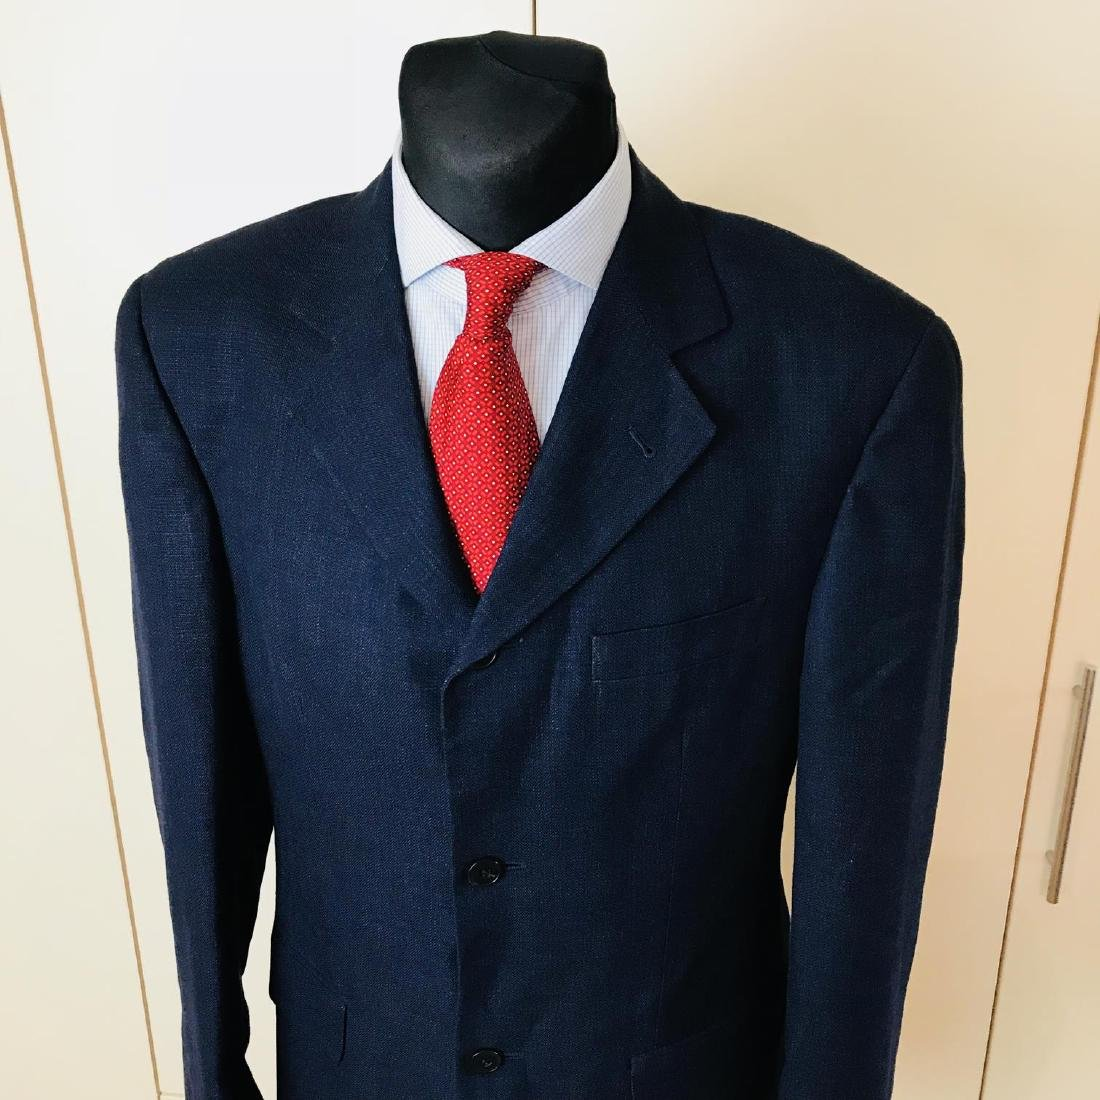 Men's SAND Navy Blue Linen Blend Jacket Blazer Size 38 - 2